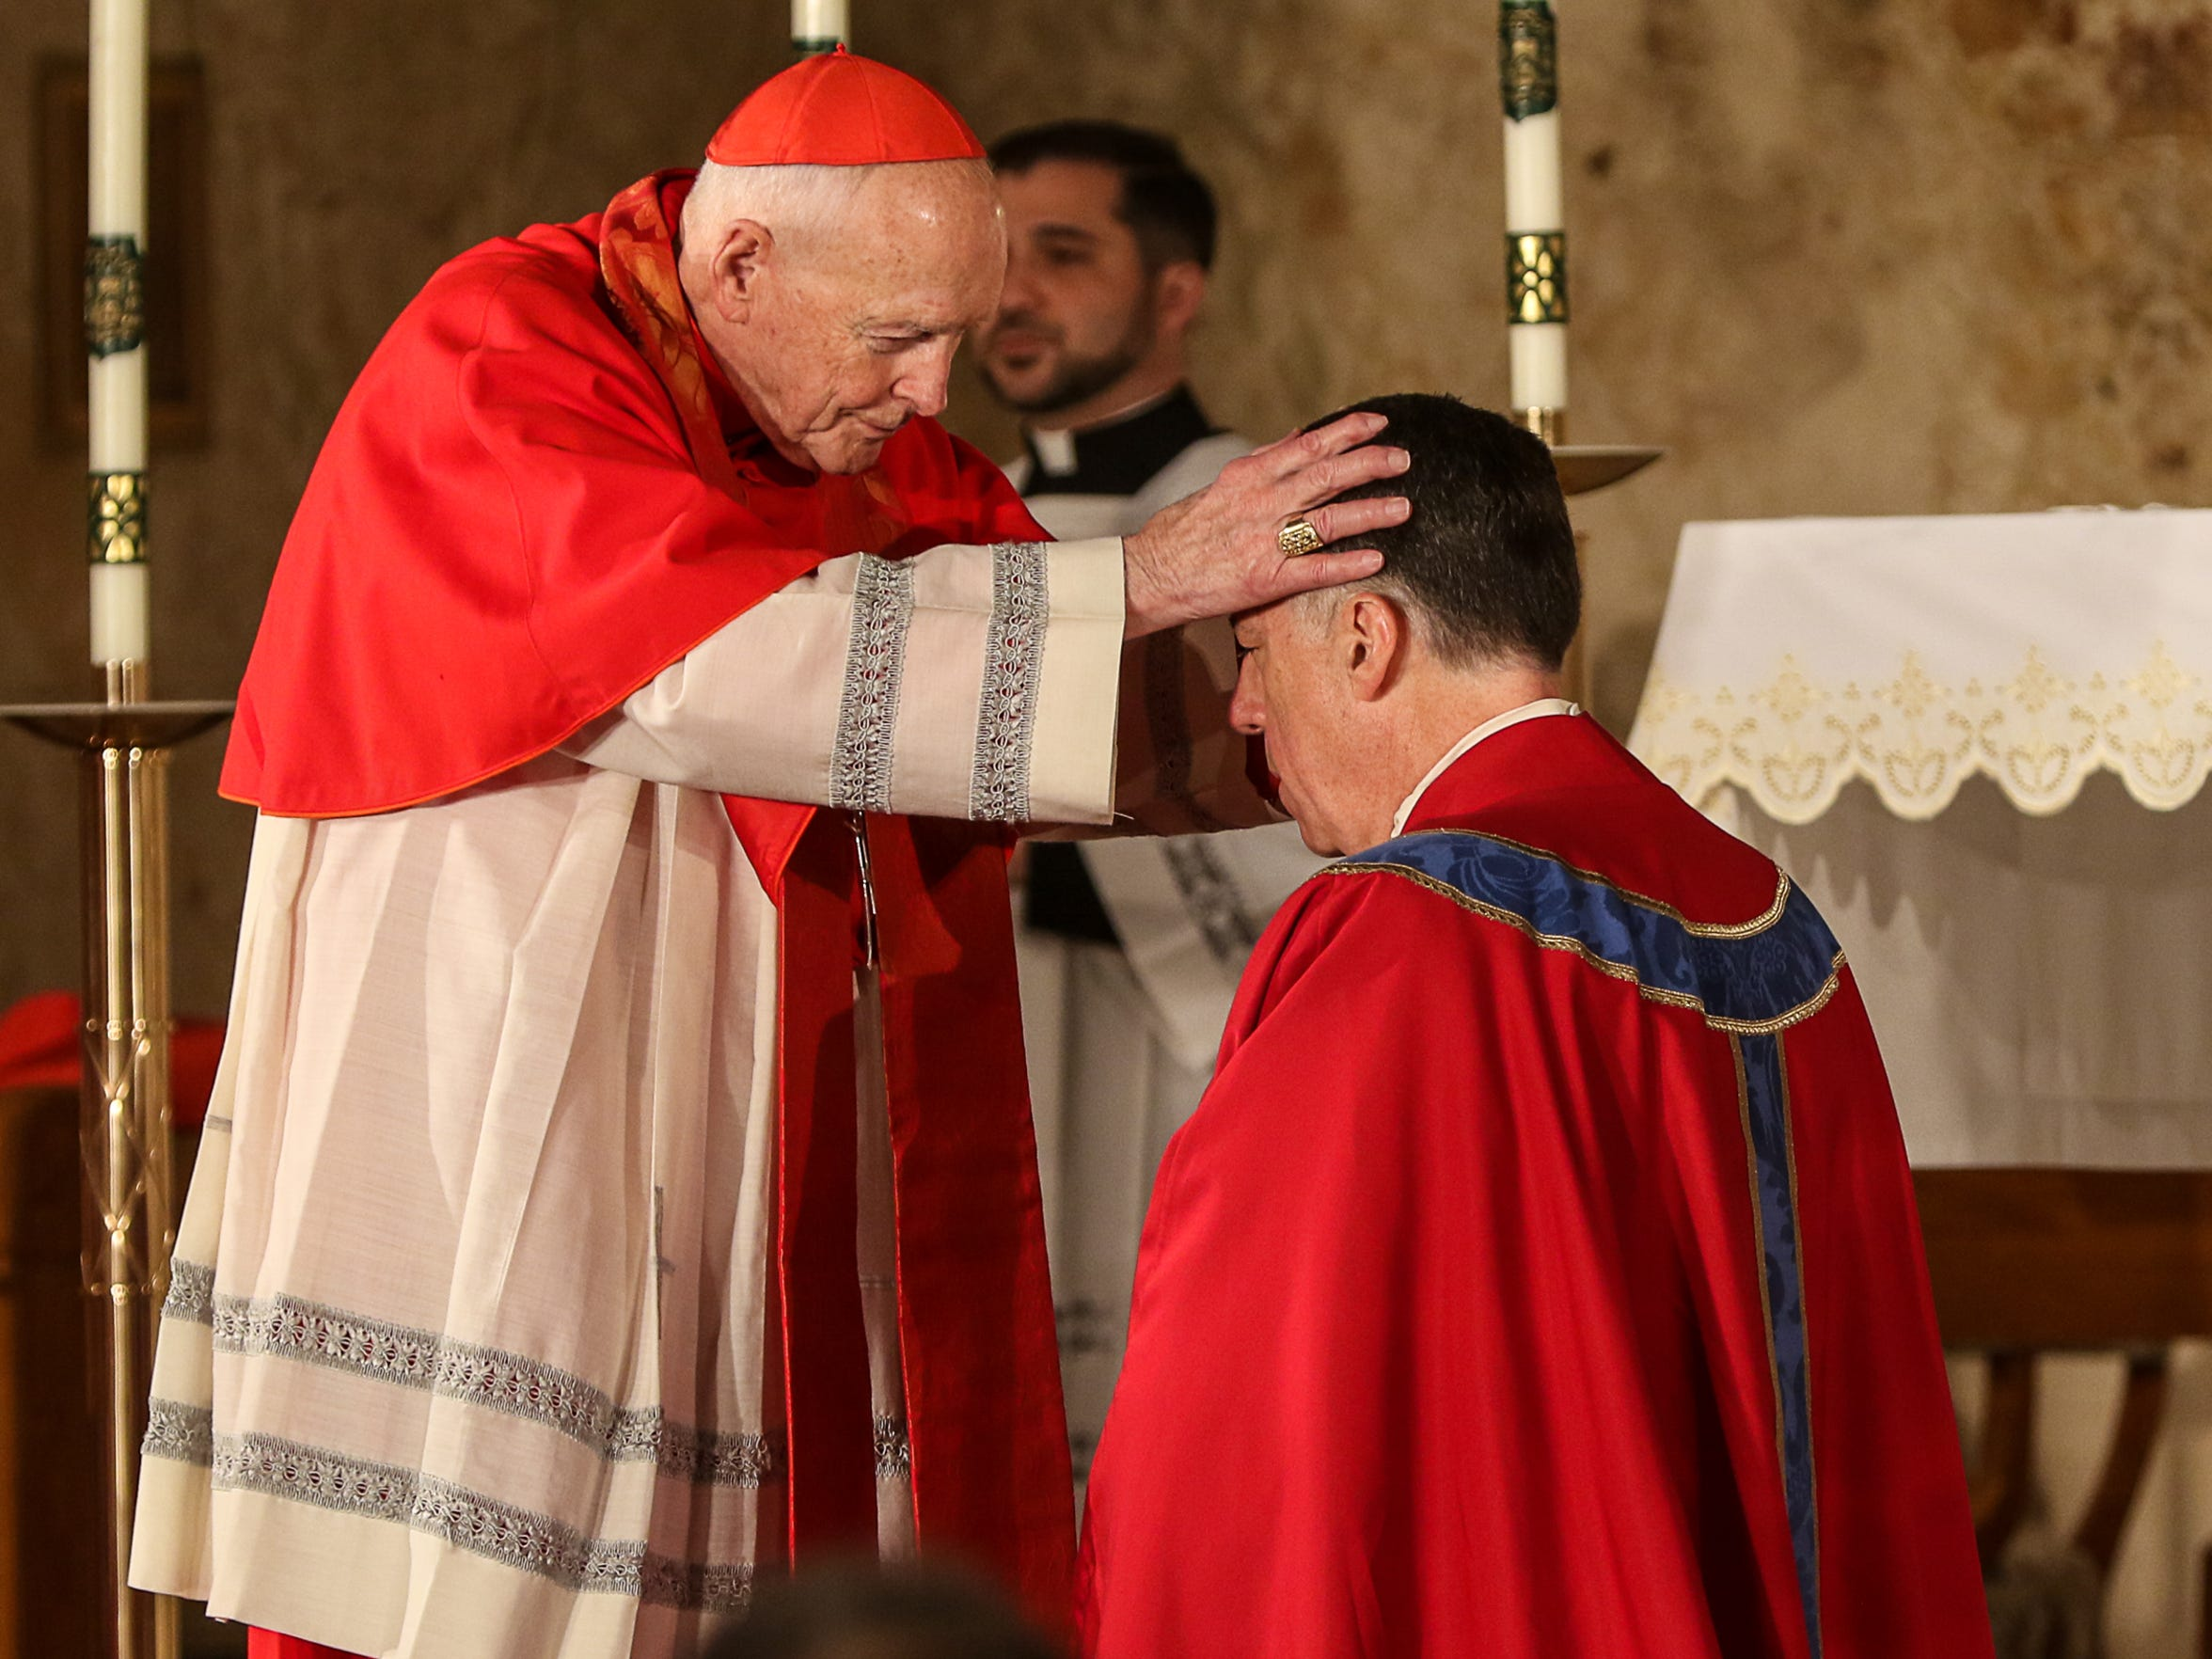 Cardinal Theodore McCarrick lays hands on The Most Rev. James Francis Checchio at his Episcopal Ordination and Installation as the fifth Bishop of Metuchen in May 2016.